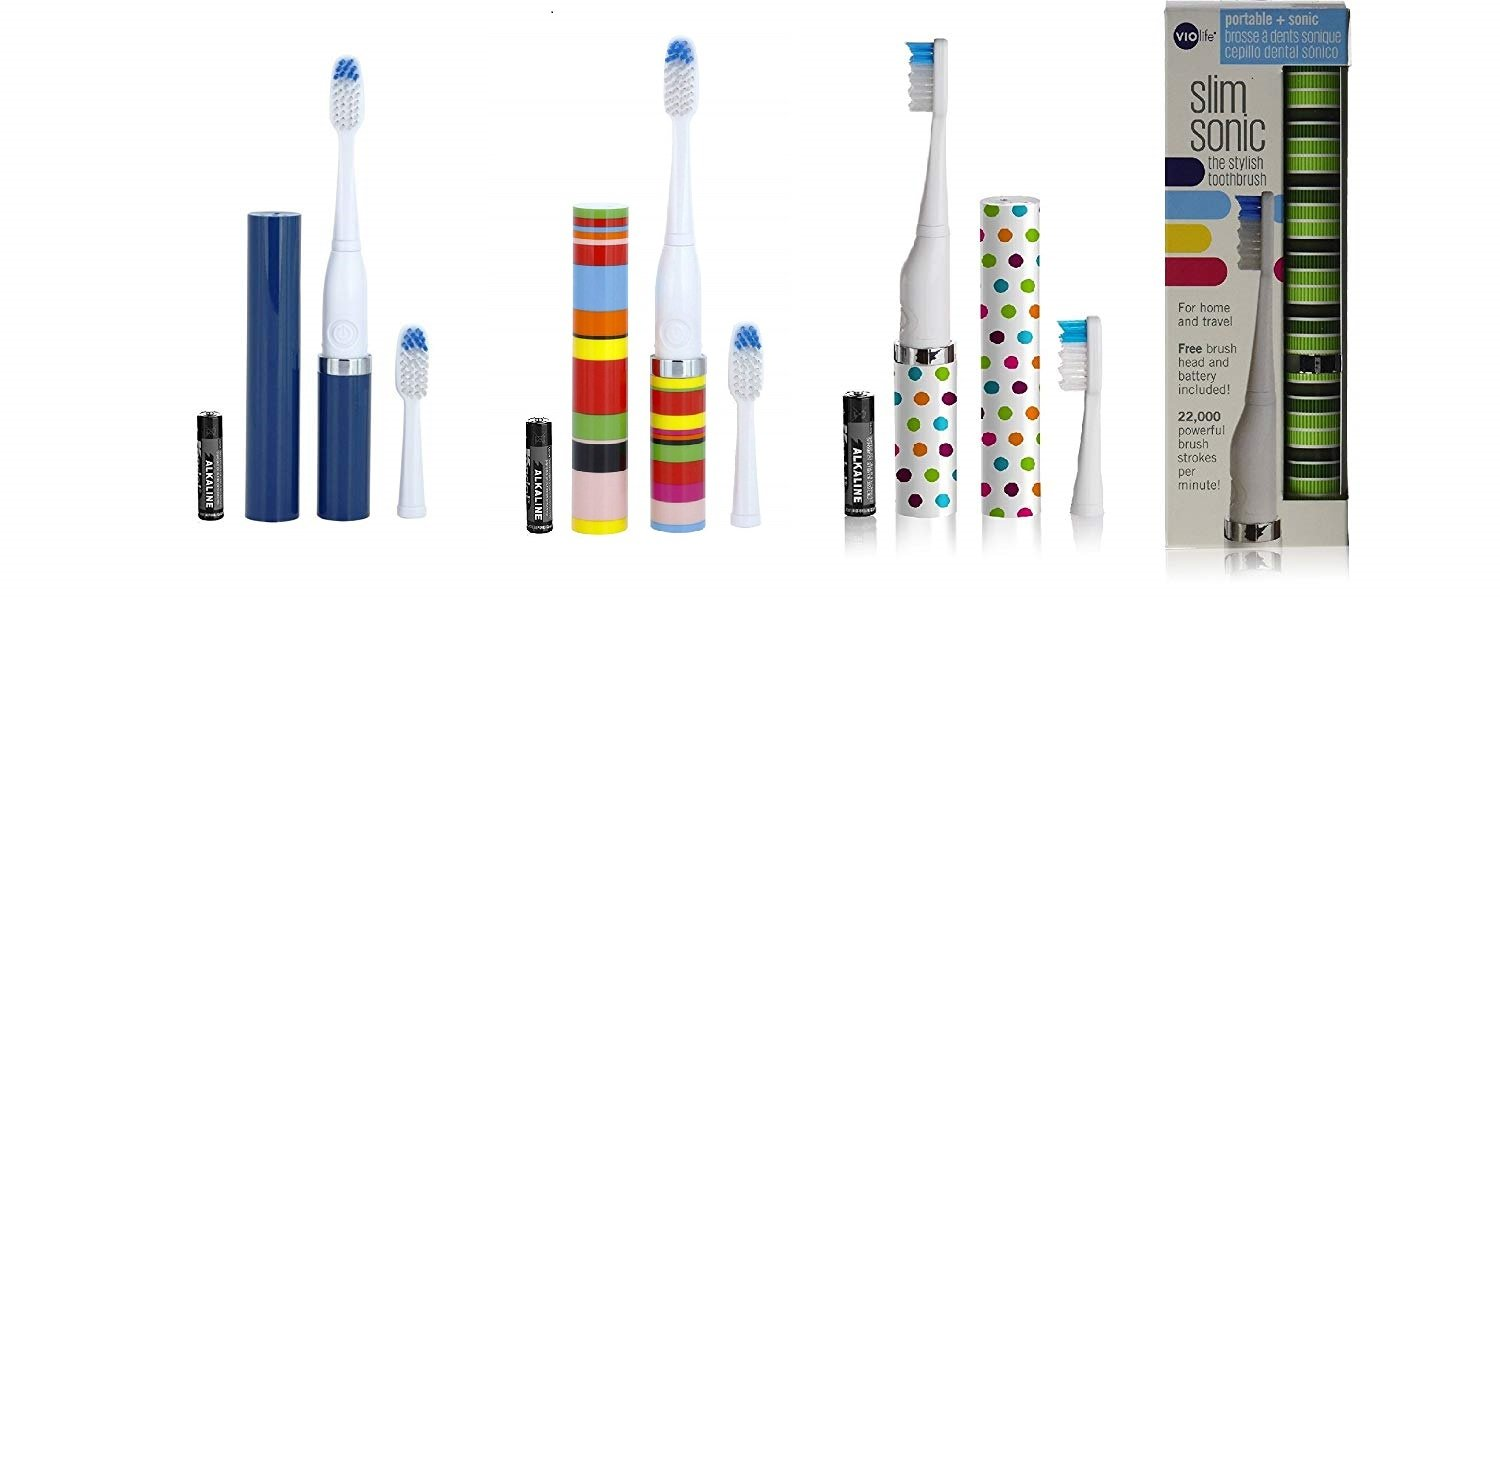 Violife Slim Portable Sonic Toothbrush Set, Designs As Pictured, 4 Count, Ocean, Candy Stripe, Spearmint, Confetti